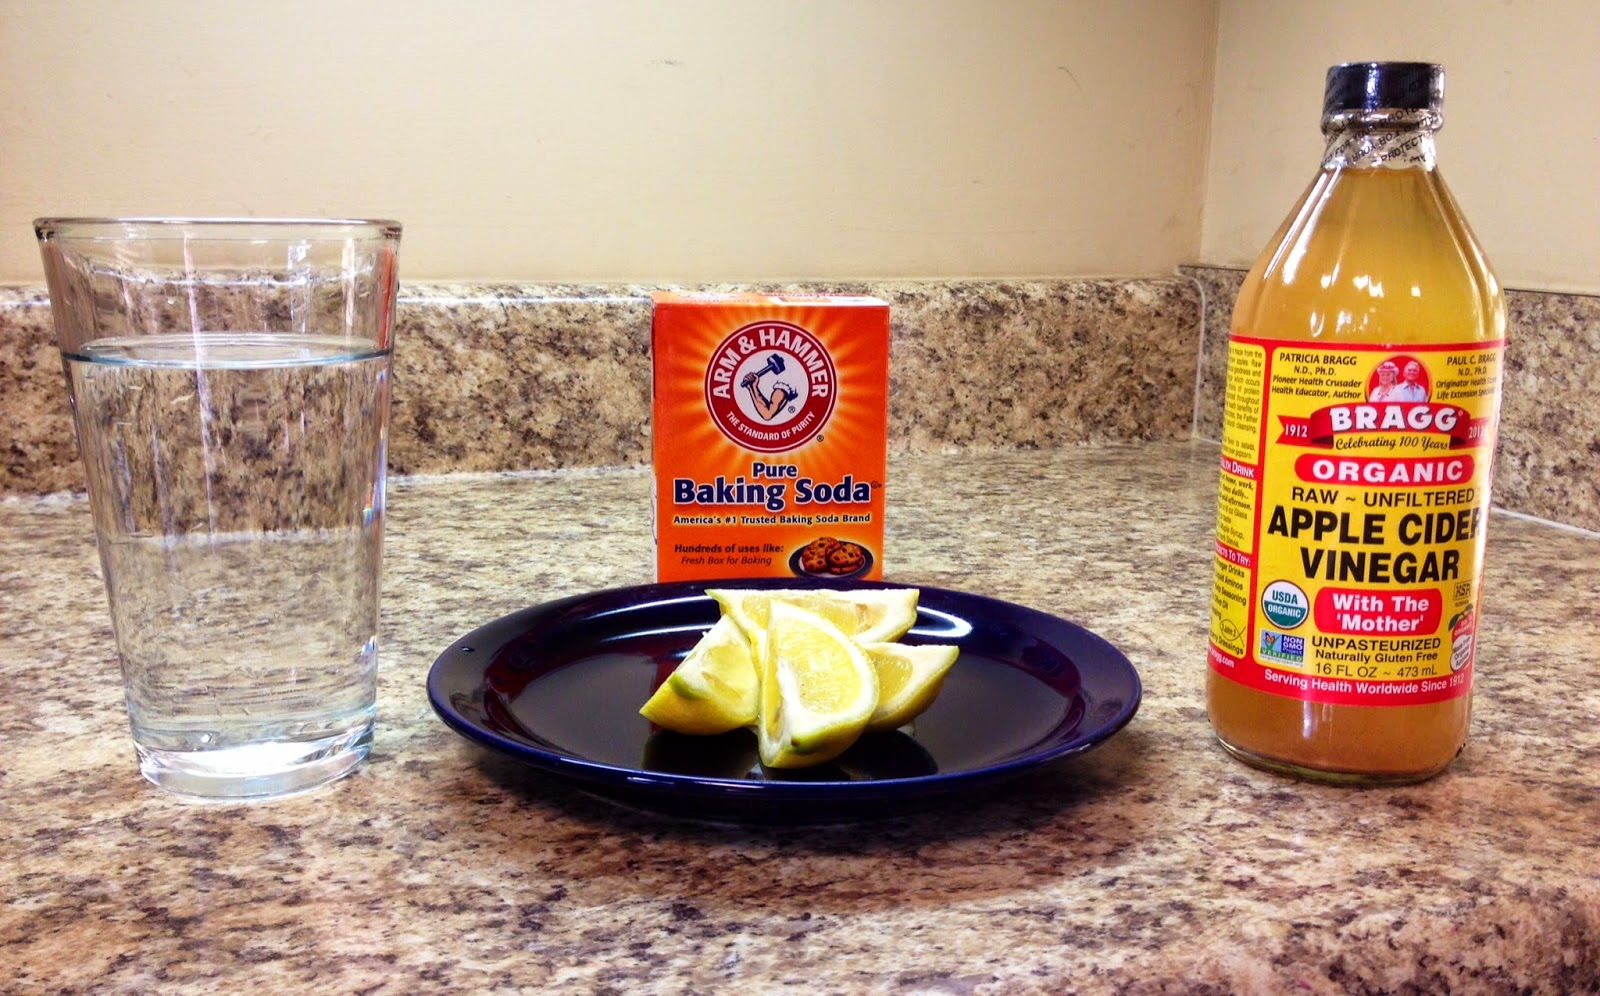 Coconut Oil and Apple Cider Vinegar Diet: Coconut Oil and